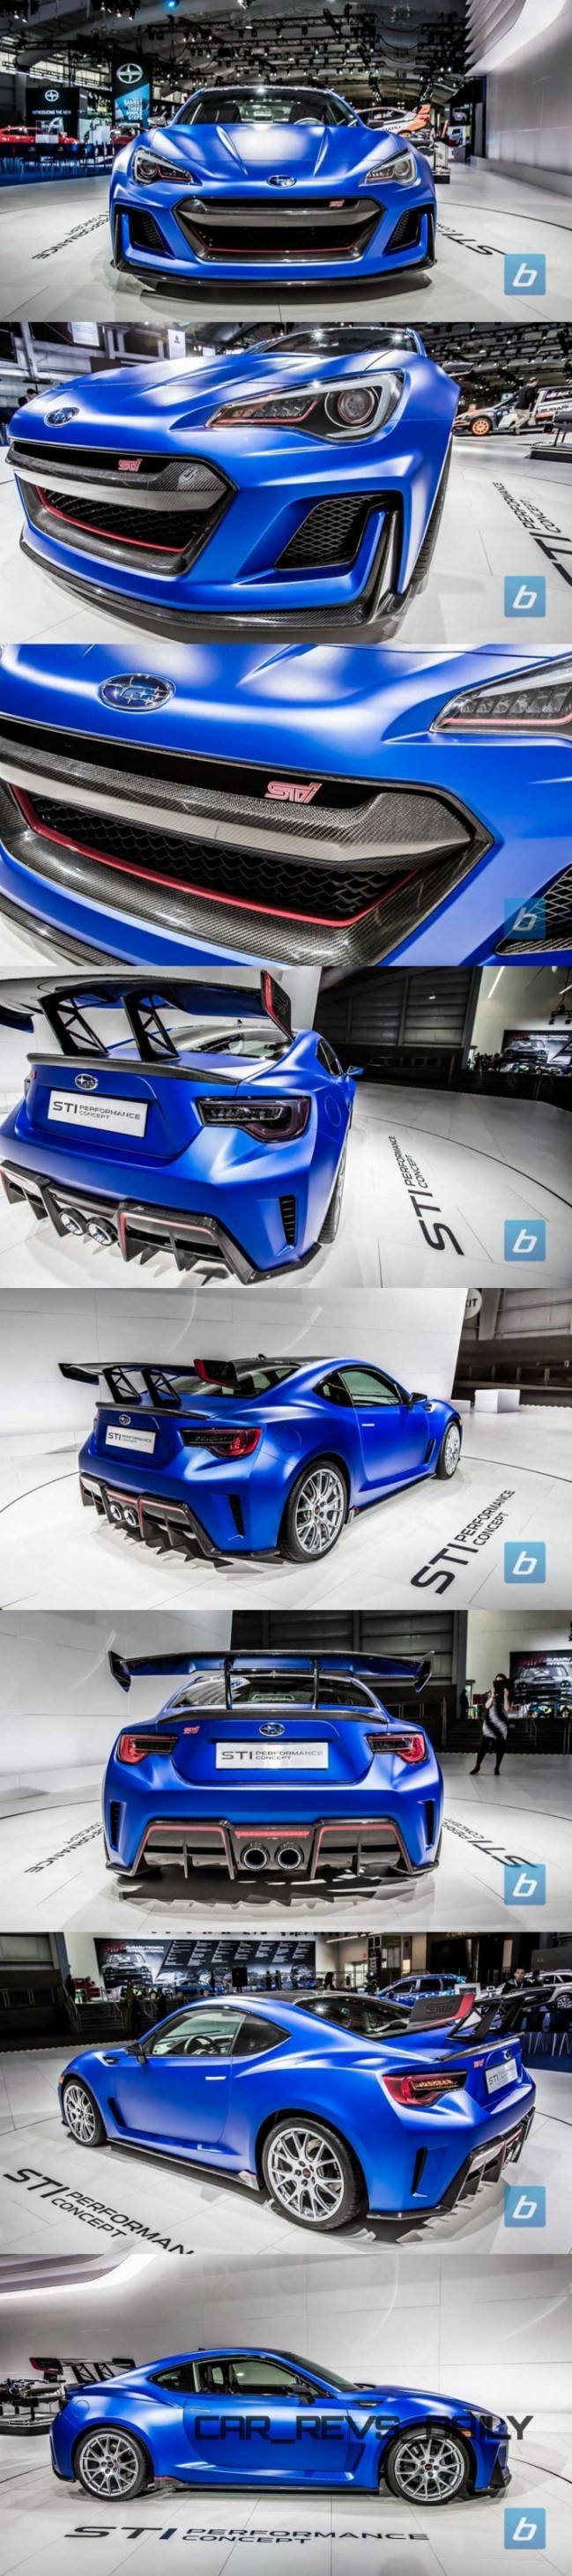 2015 subaru brz sti concept widebody packs 400hp super gt turbo. Black Bedroom Furniture Sets. Home Design Ideas